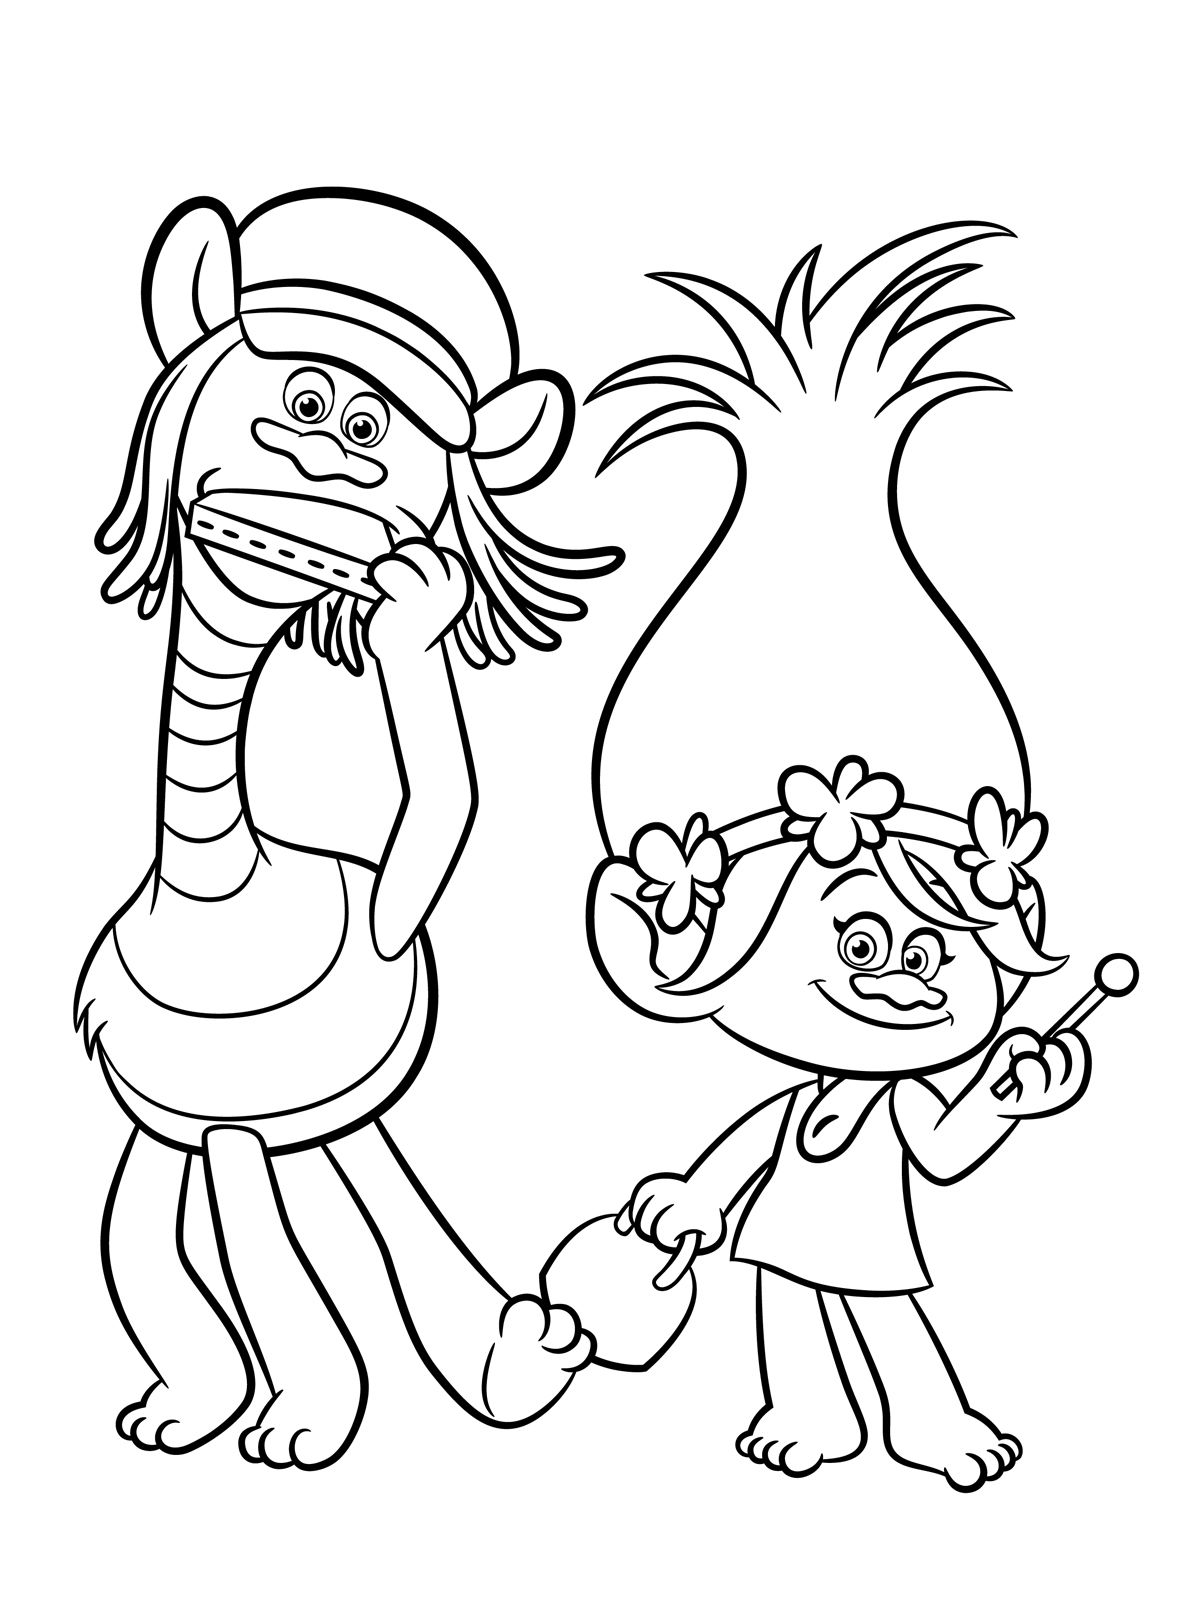 Trolls Coloring pages to download and print for free | Birthday ...